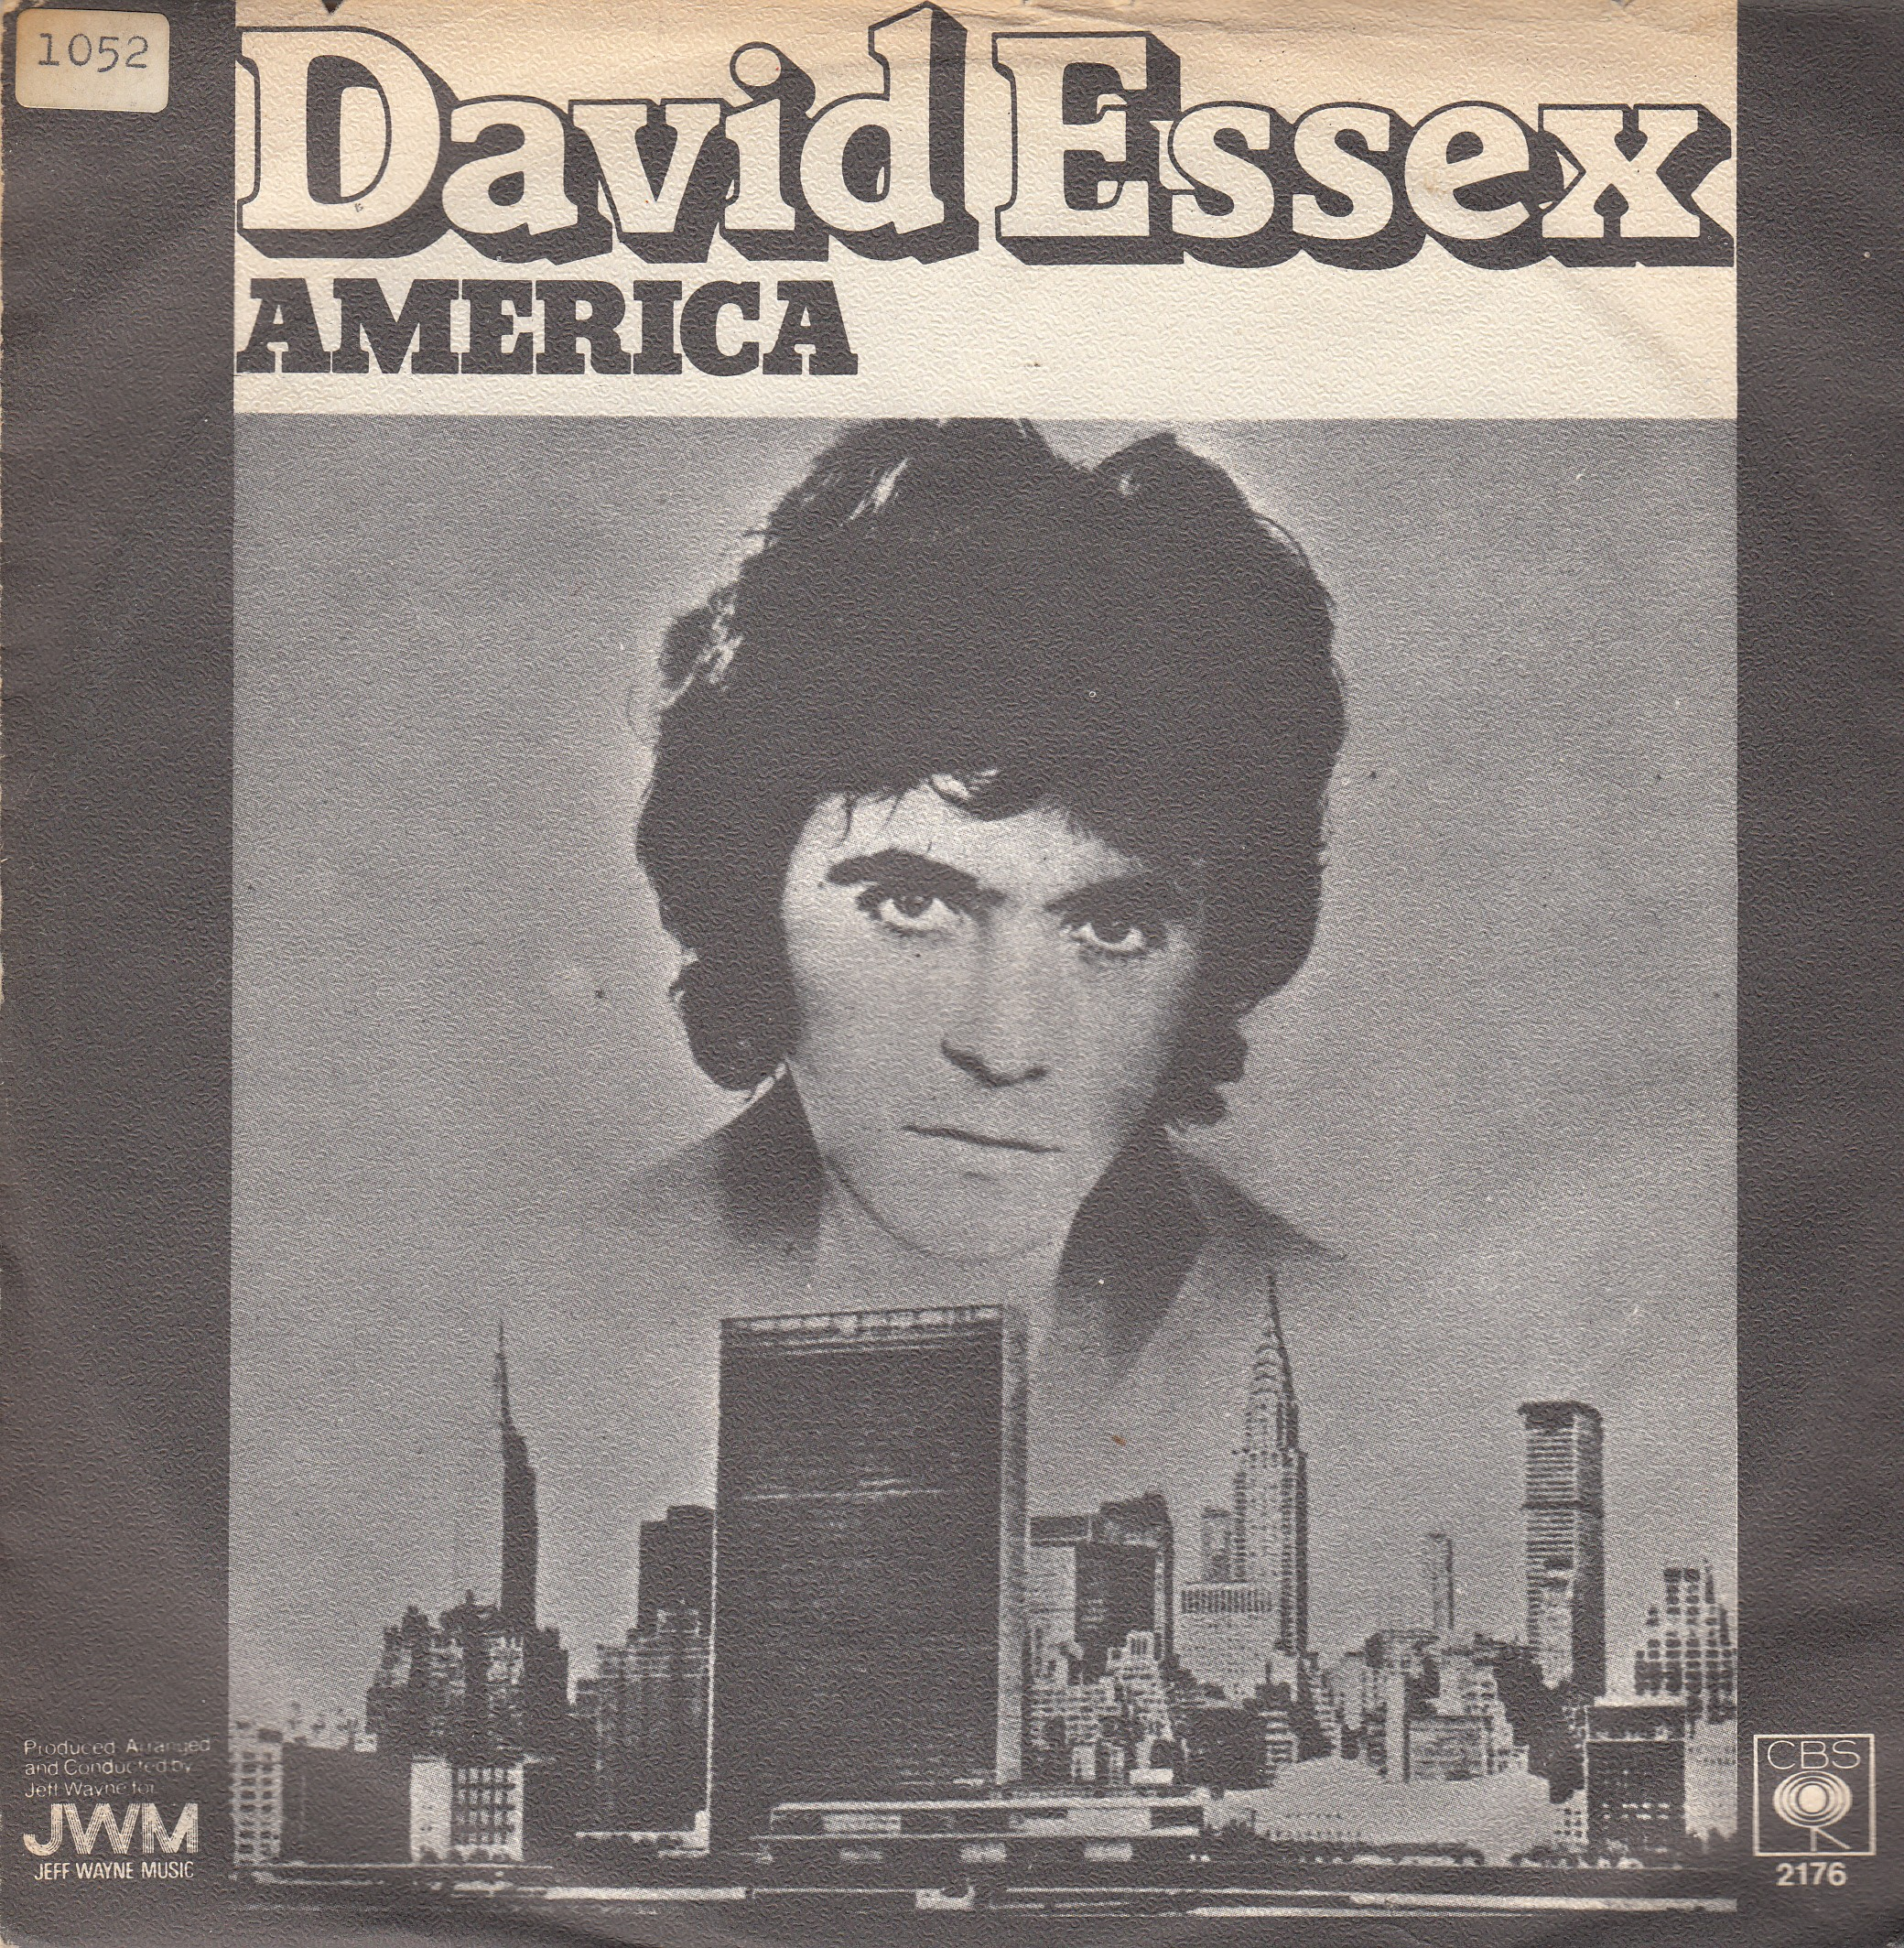 Essex David - America/dance With Little Girl